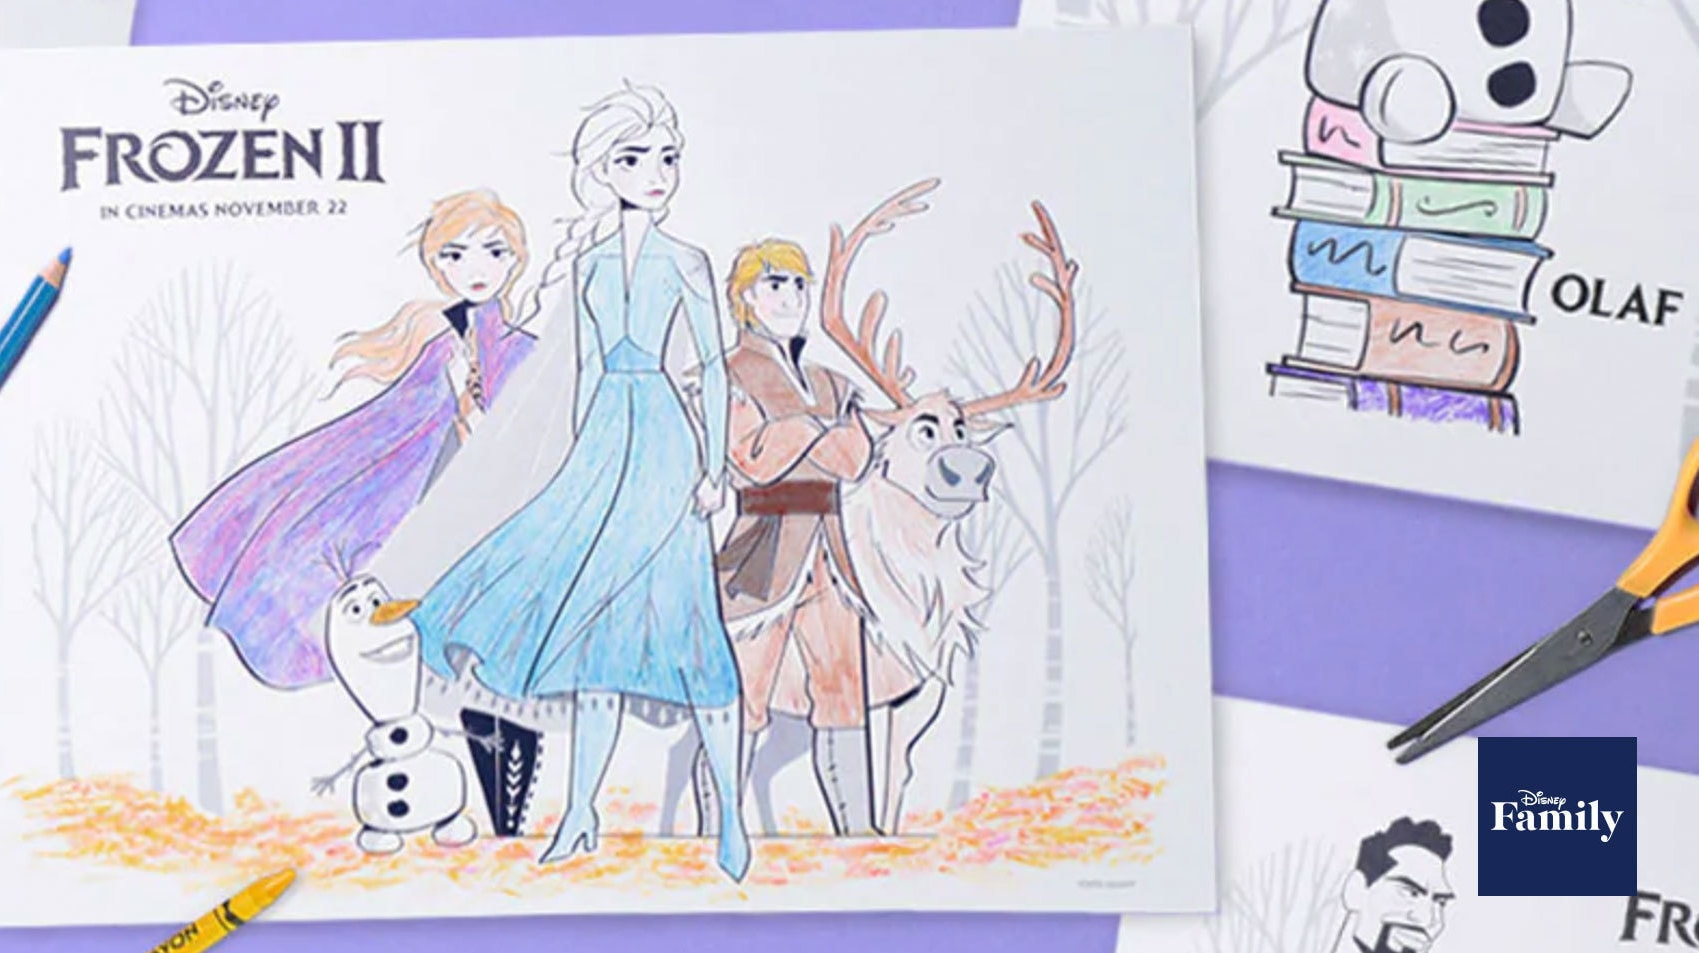 Your Little Ones Will Love These Disney's Frozen 2 Printable Activity Pages